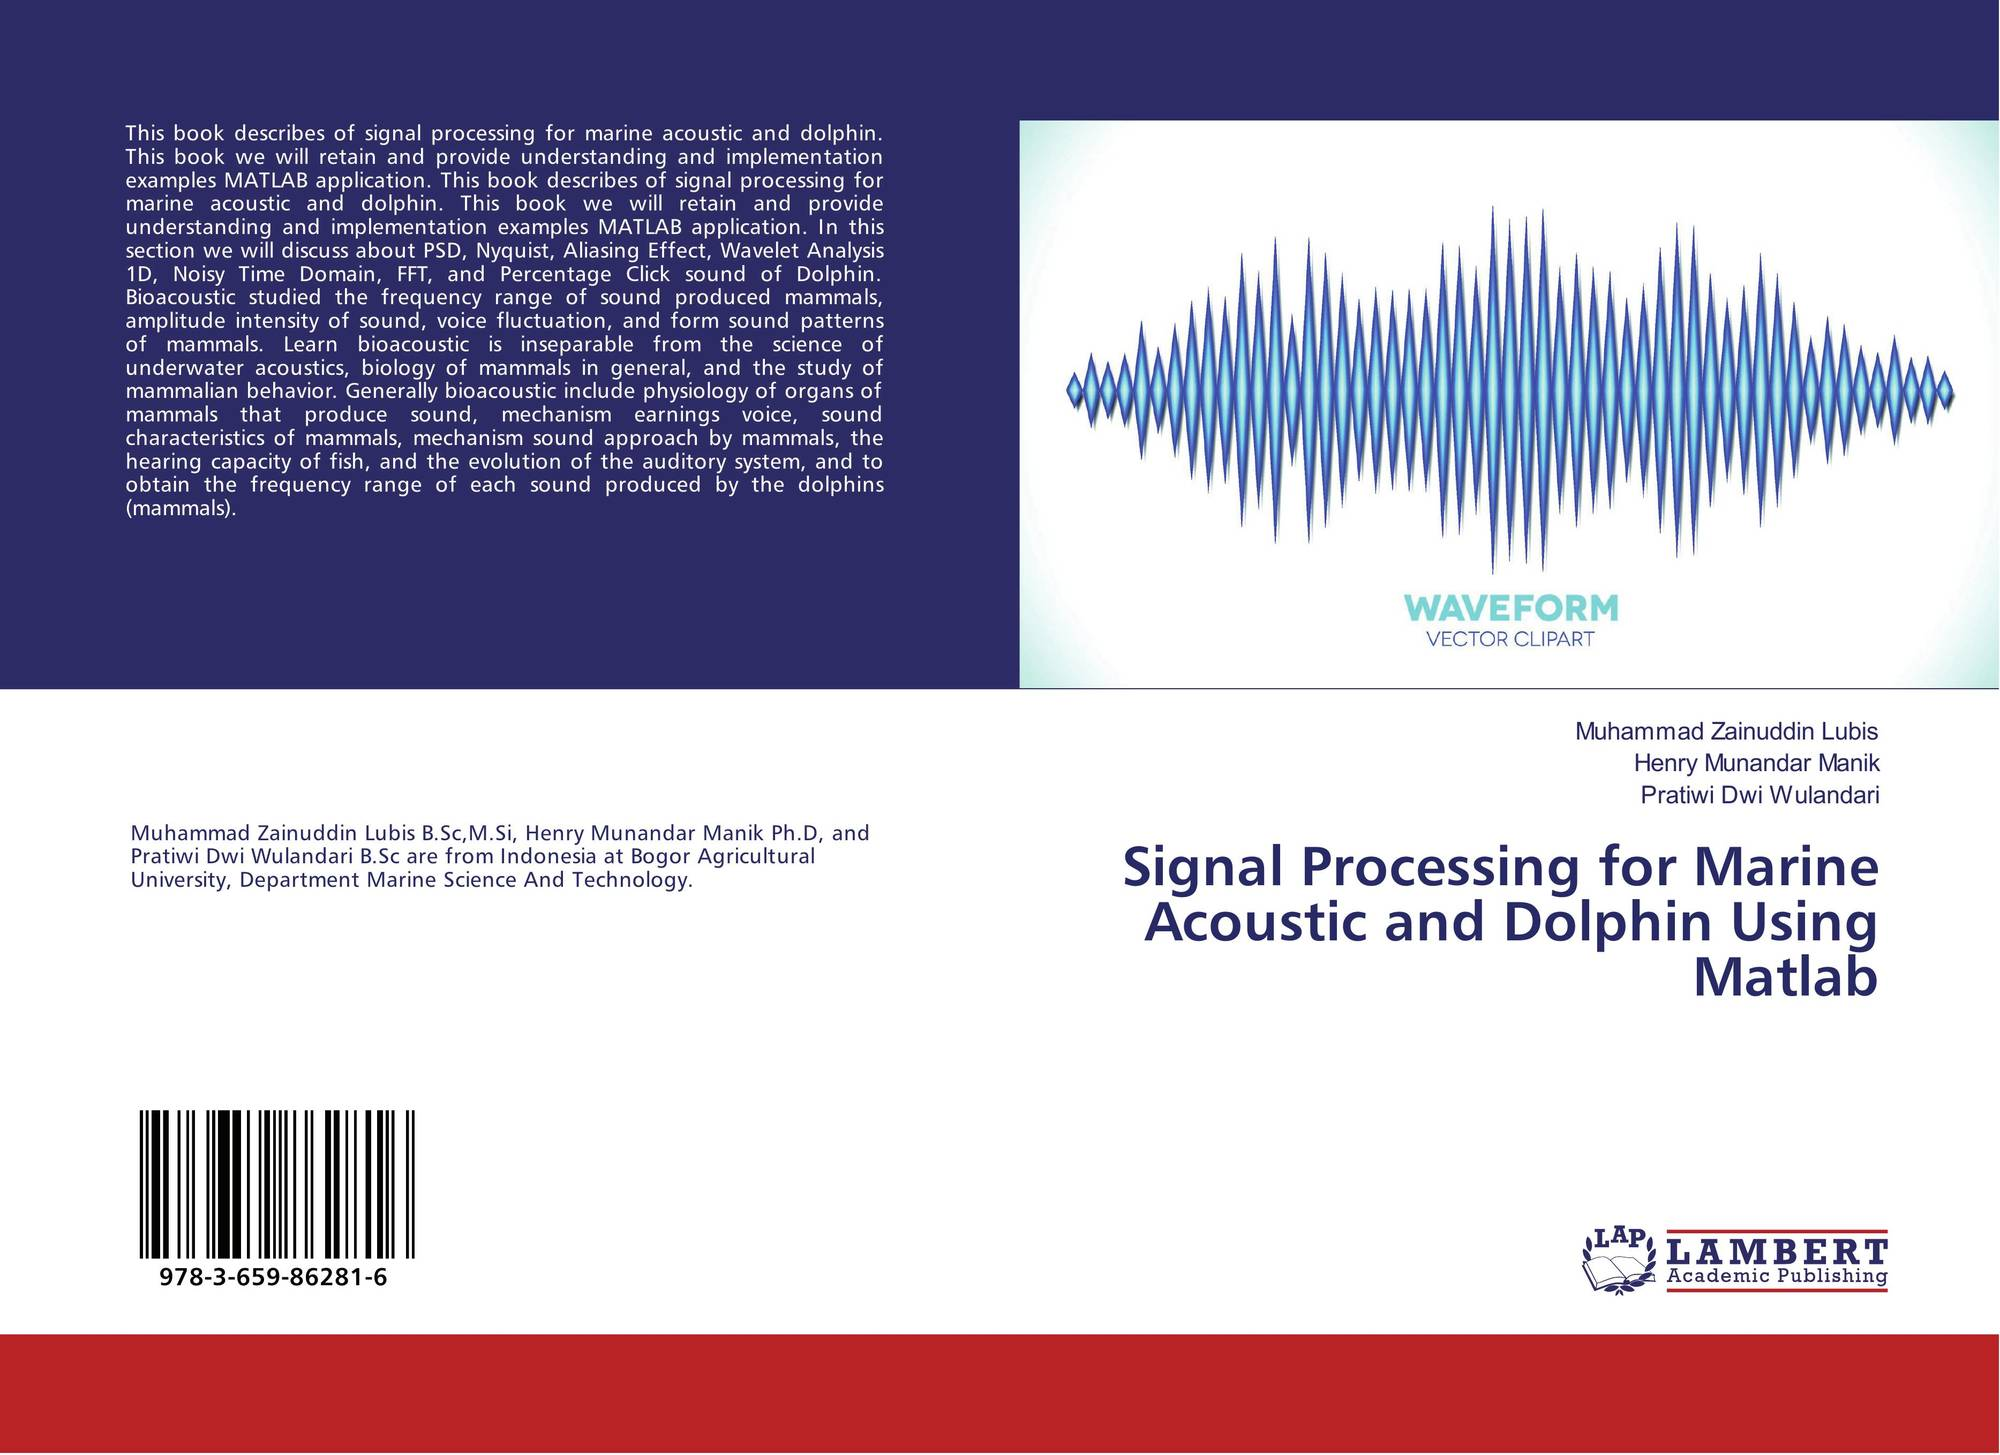 Signal Processing for Marine Acoustic and Dolphin Using